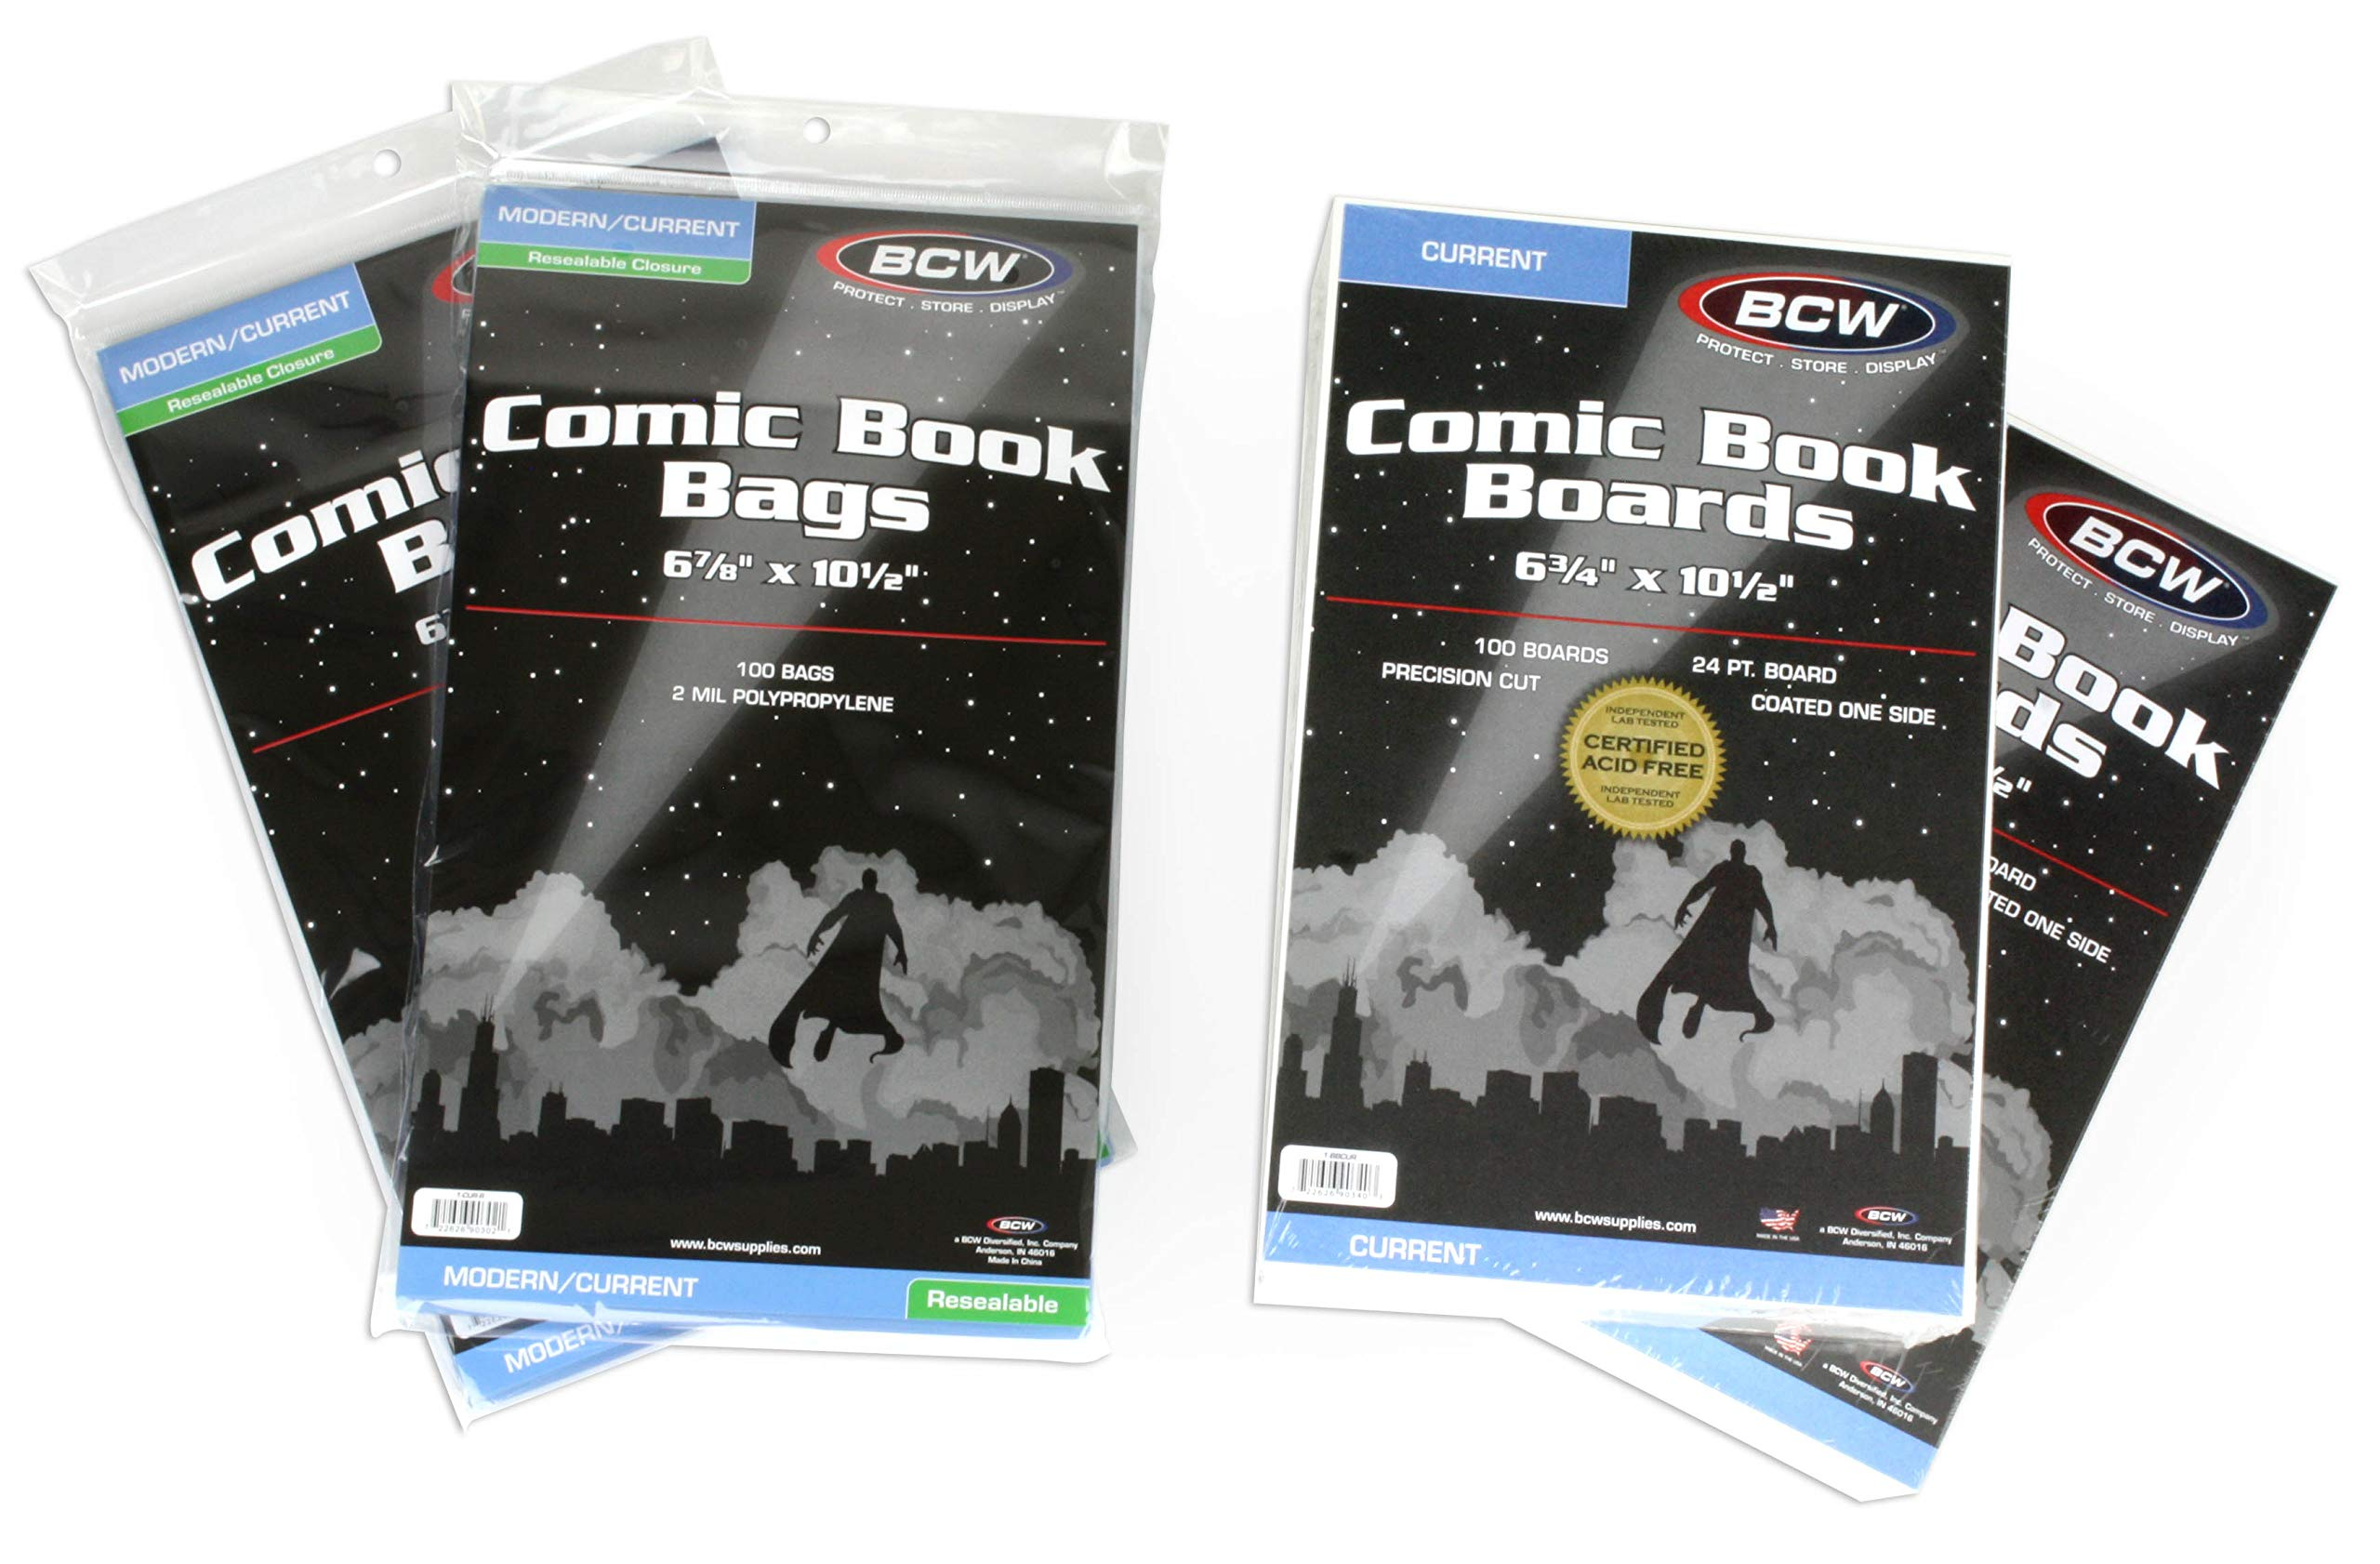 200 BCW RESEALABLE Current Comic Bags & Backer Boards